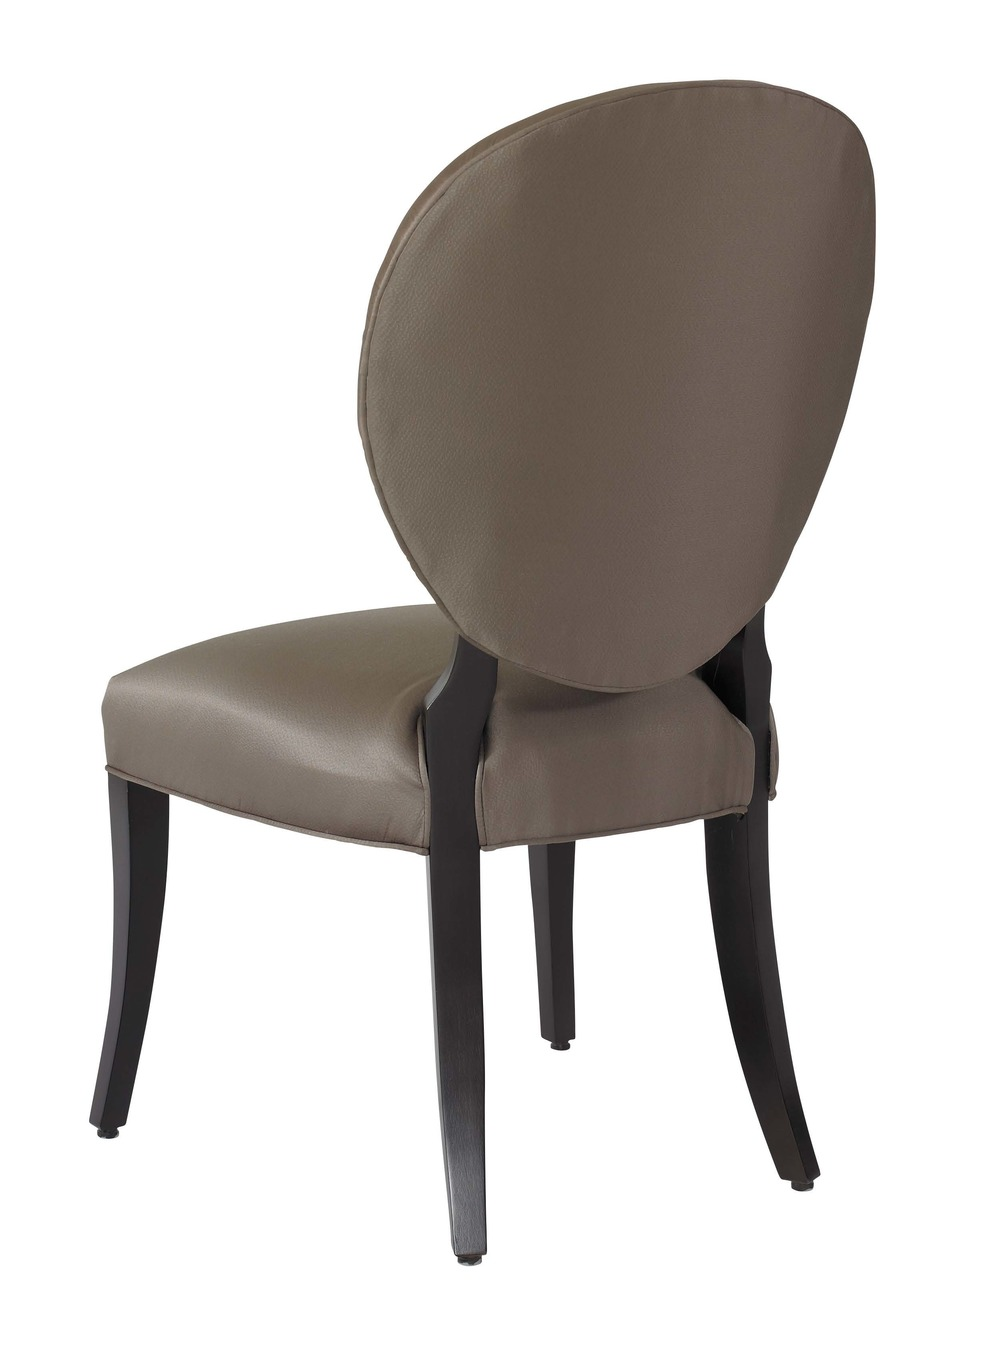 Designmaster Furniture - Amelia Side Chair